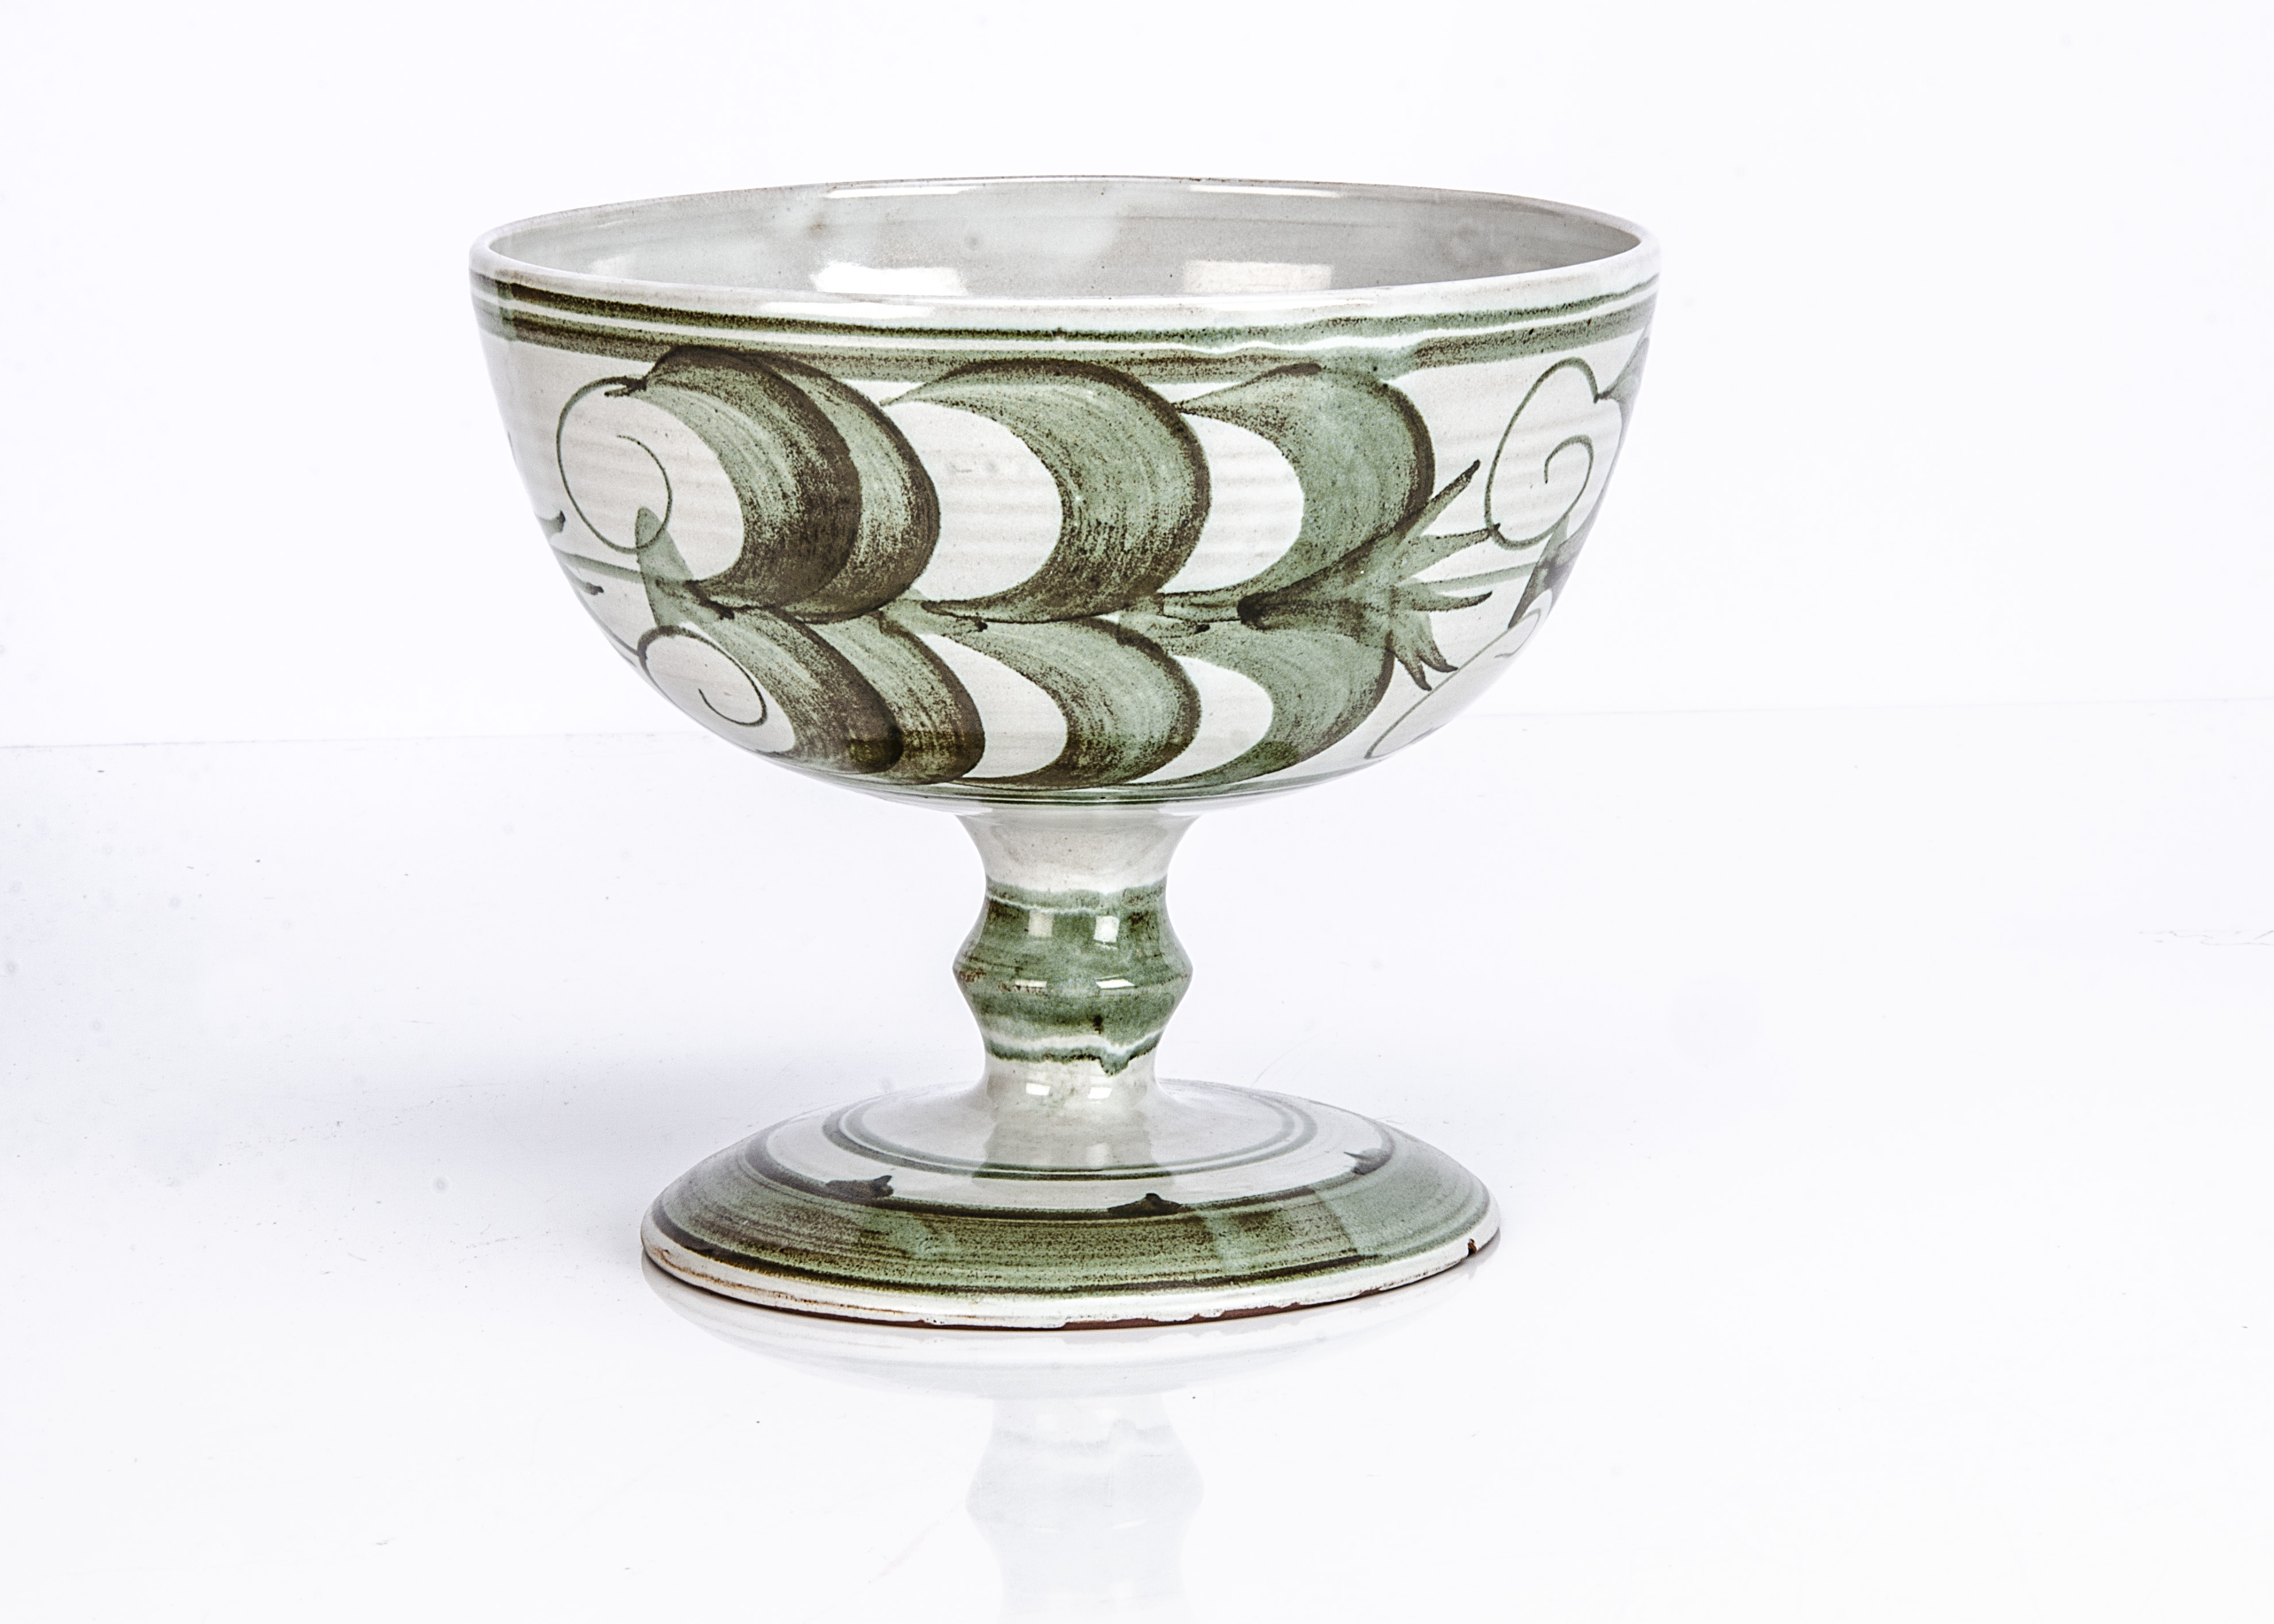 An Aldermaston Pottery footed bowl, with green decoration, signed VC to base, 19.5cm diameter and